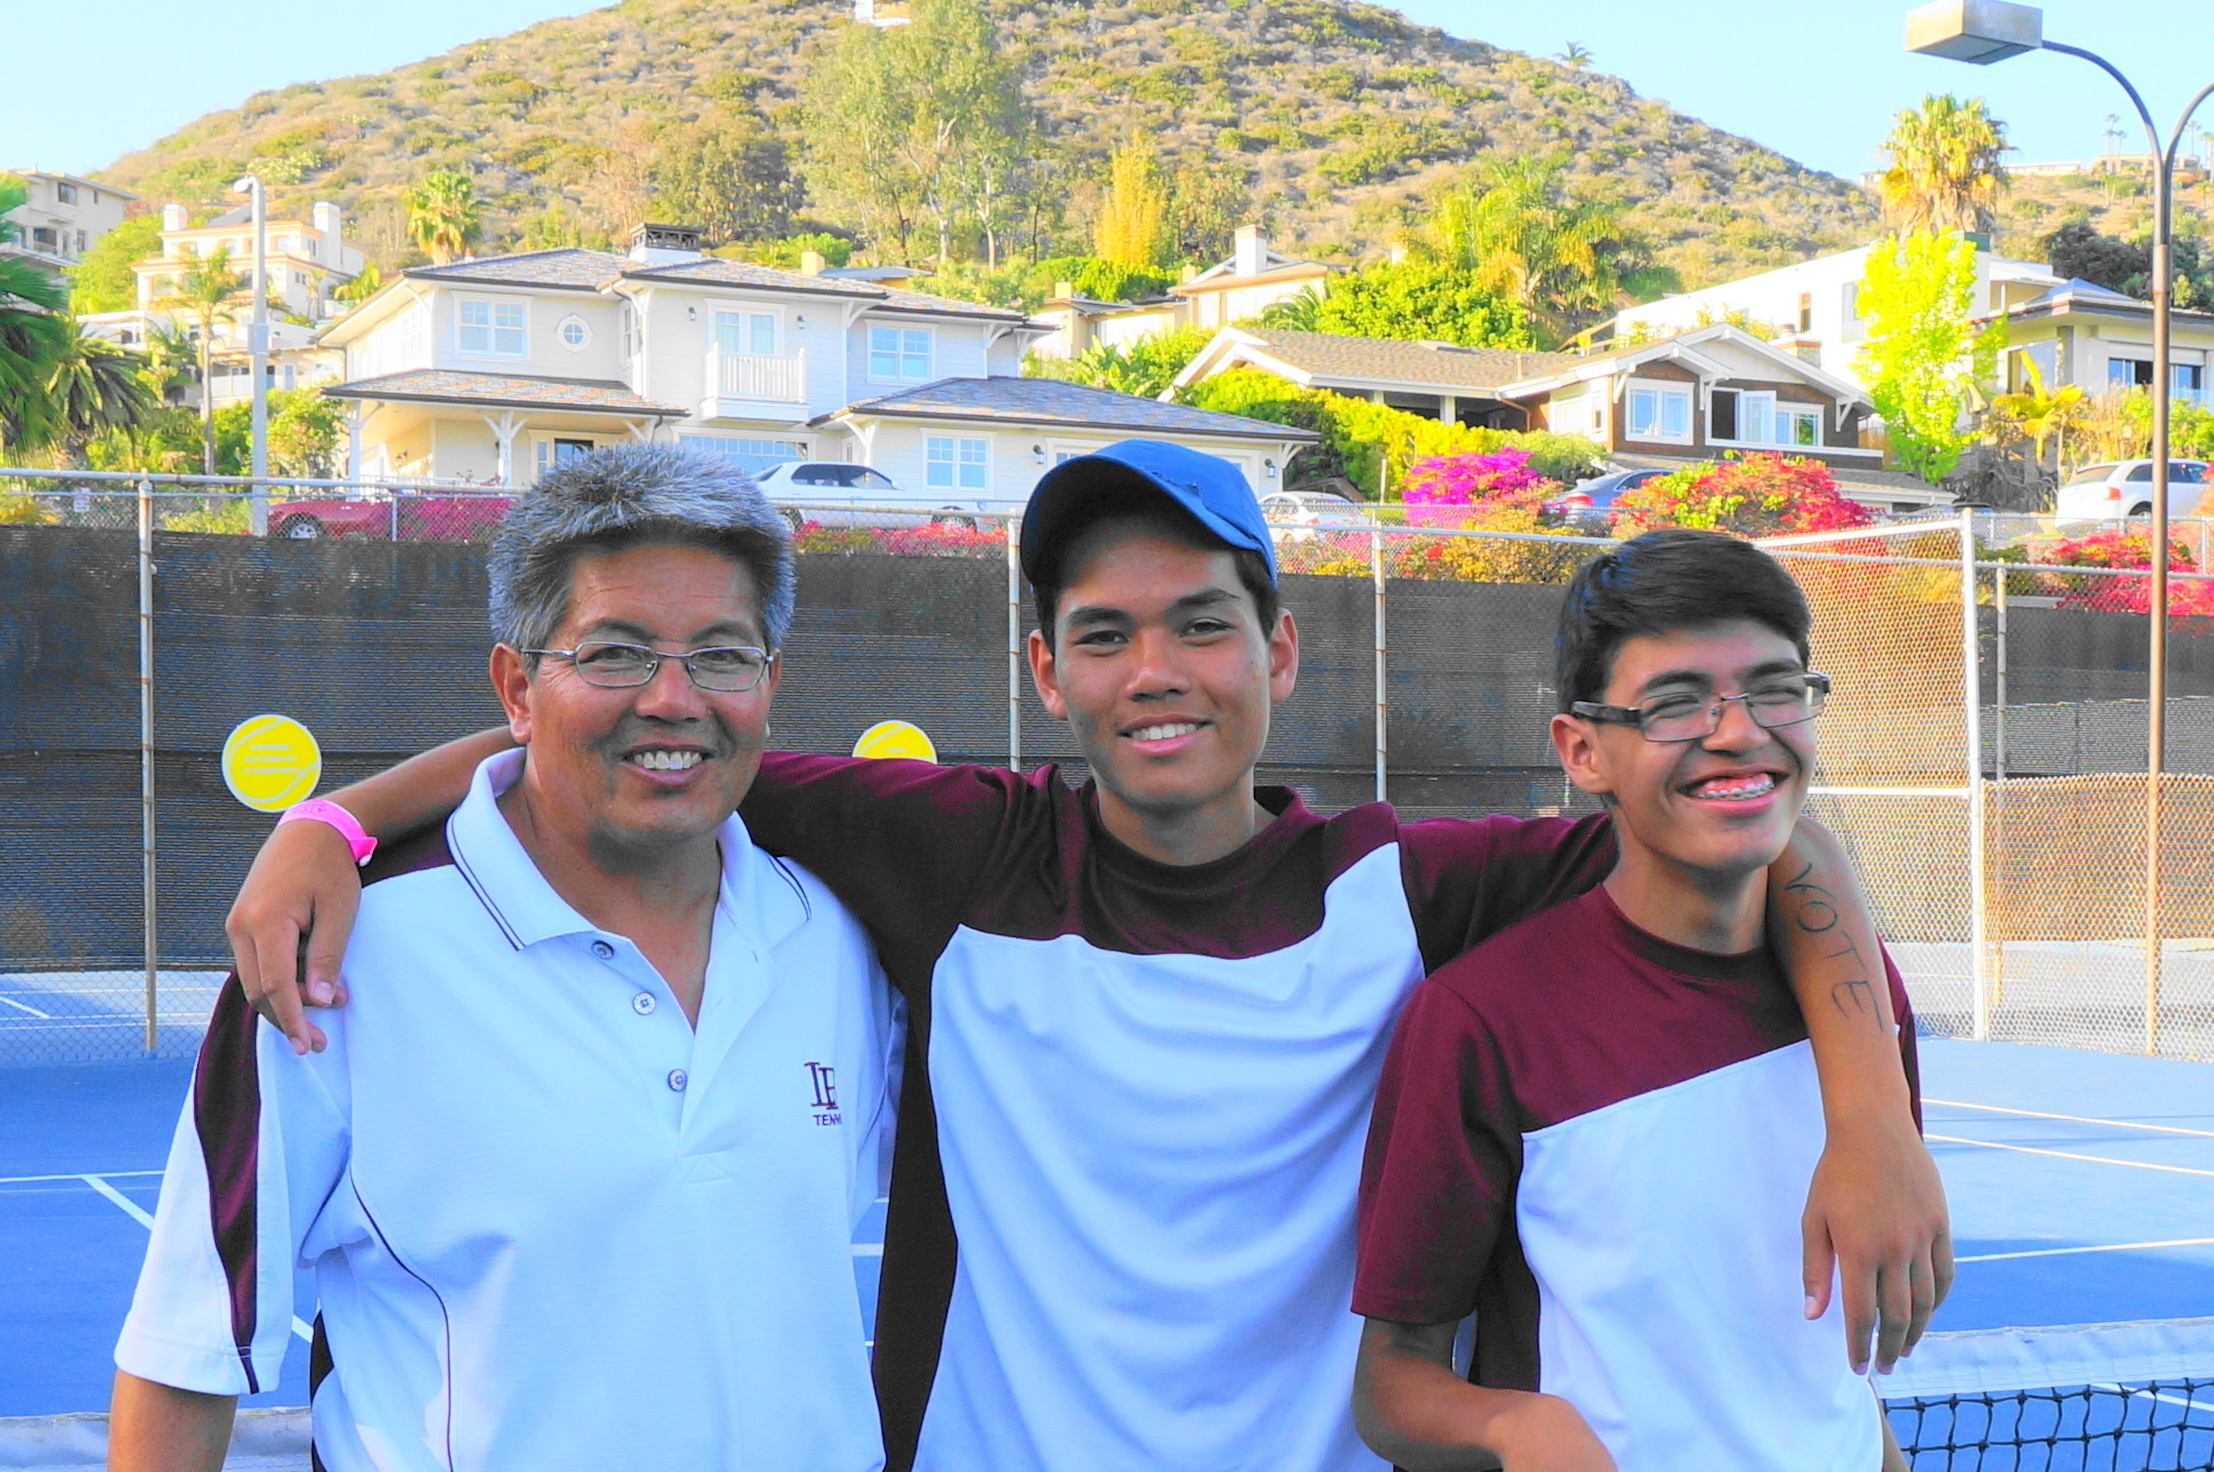 Everett Gee, left, with his sons, tennis champs Ryan and Ethan